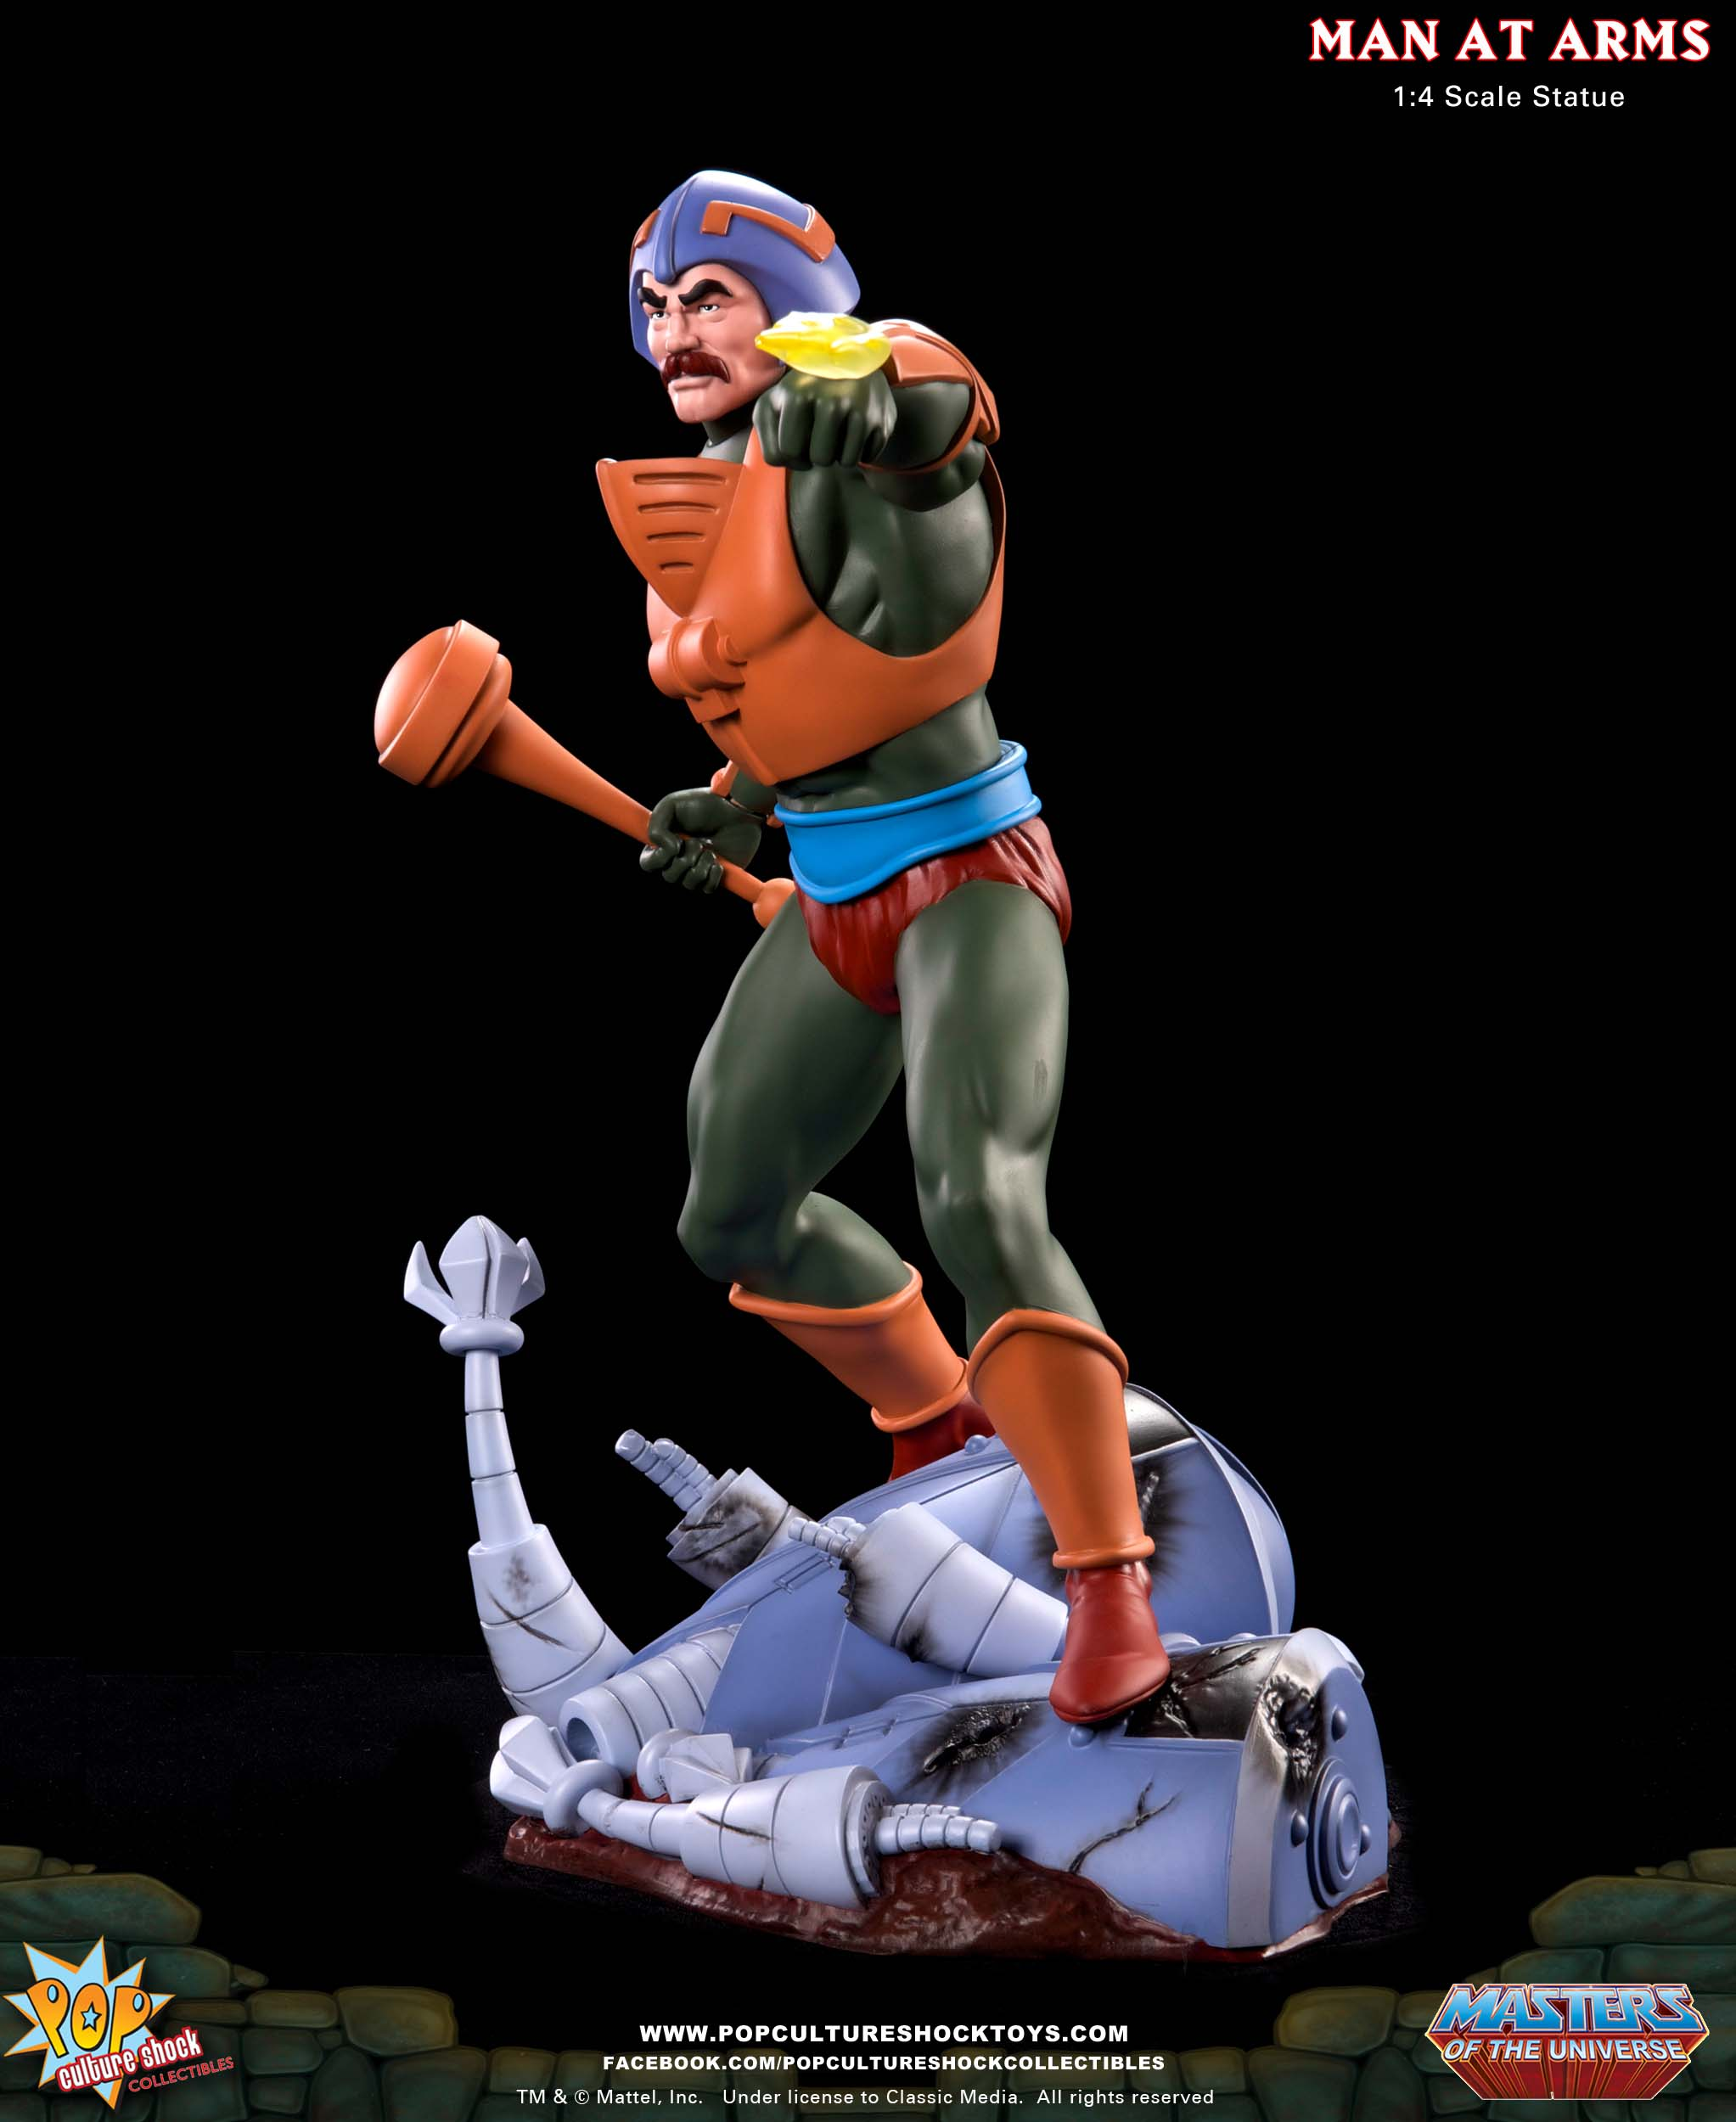 Pop Culture Shock Man-At-Arms Official Images and Pre-order Info